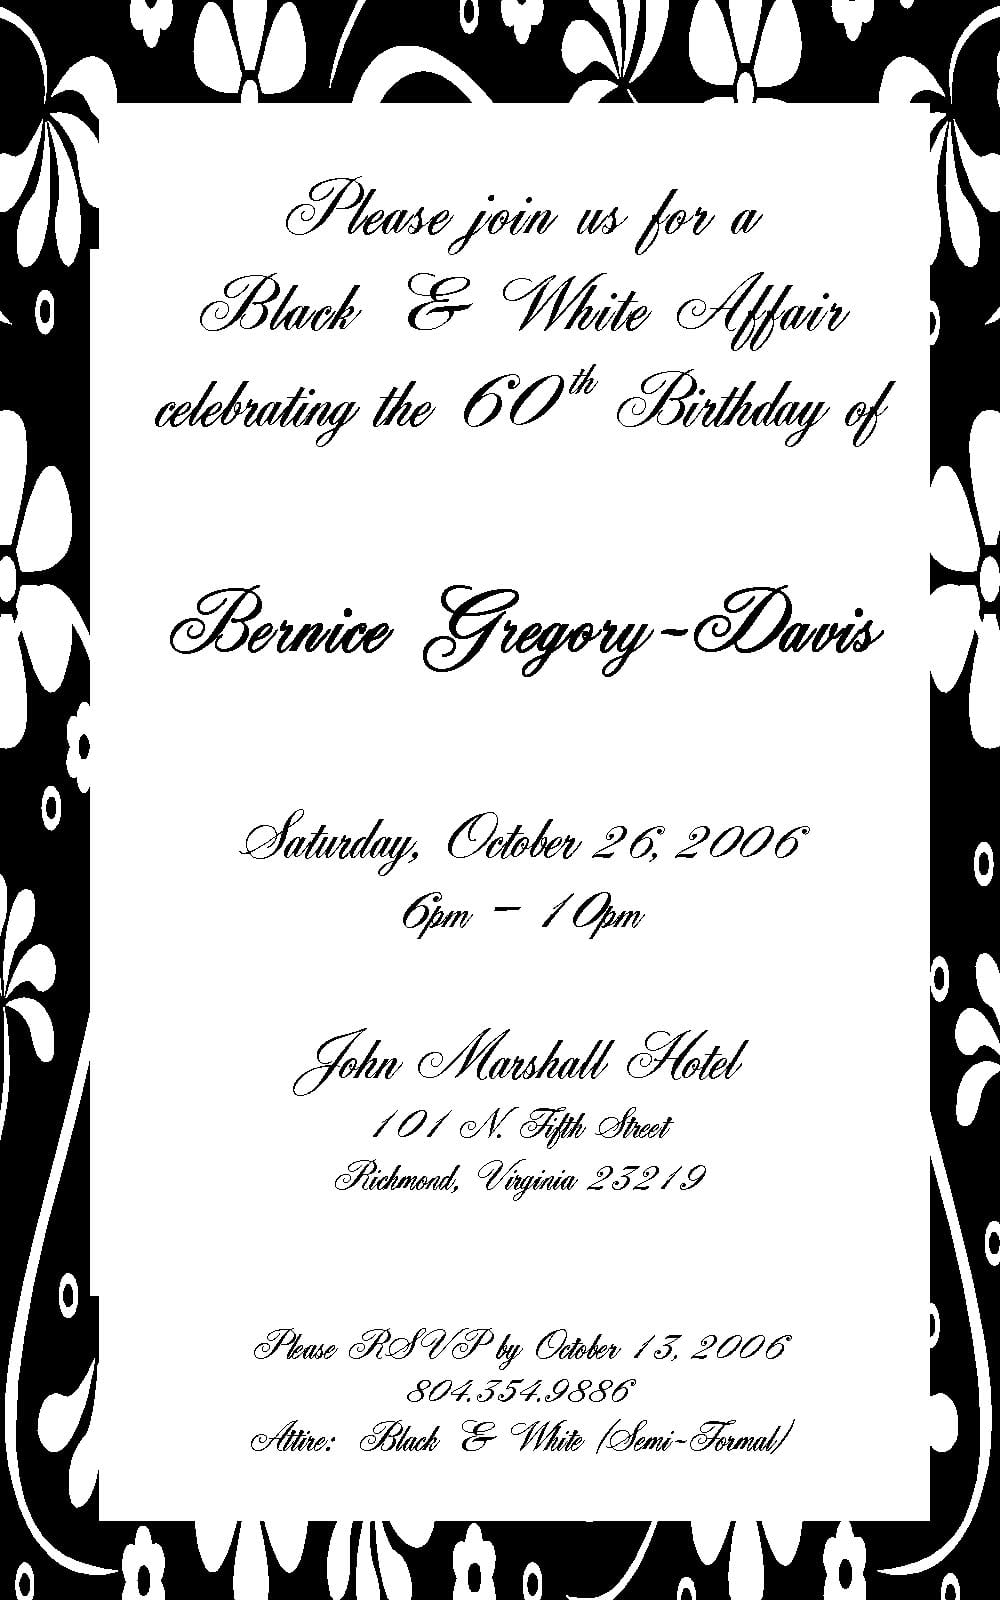 Birthday Invitation Wording For Adults Funny is perfect invitation ideas